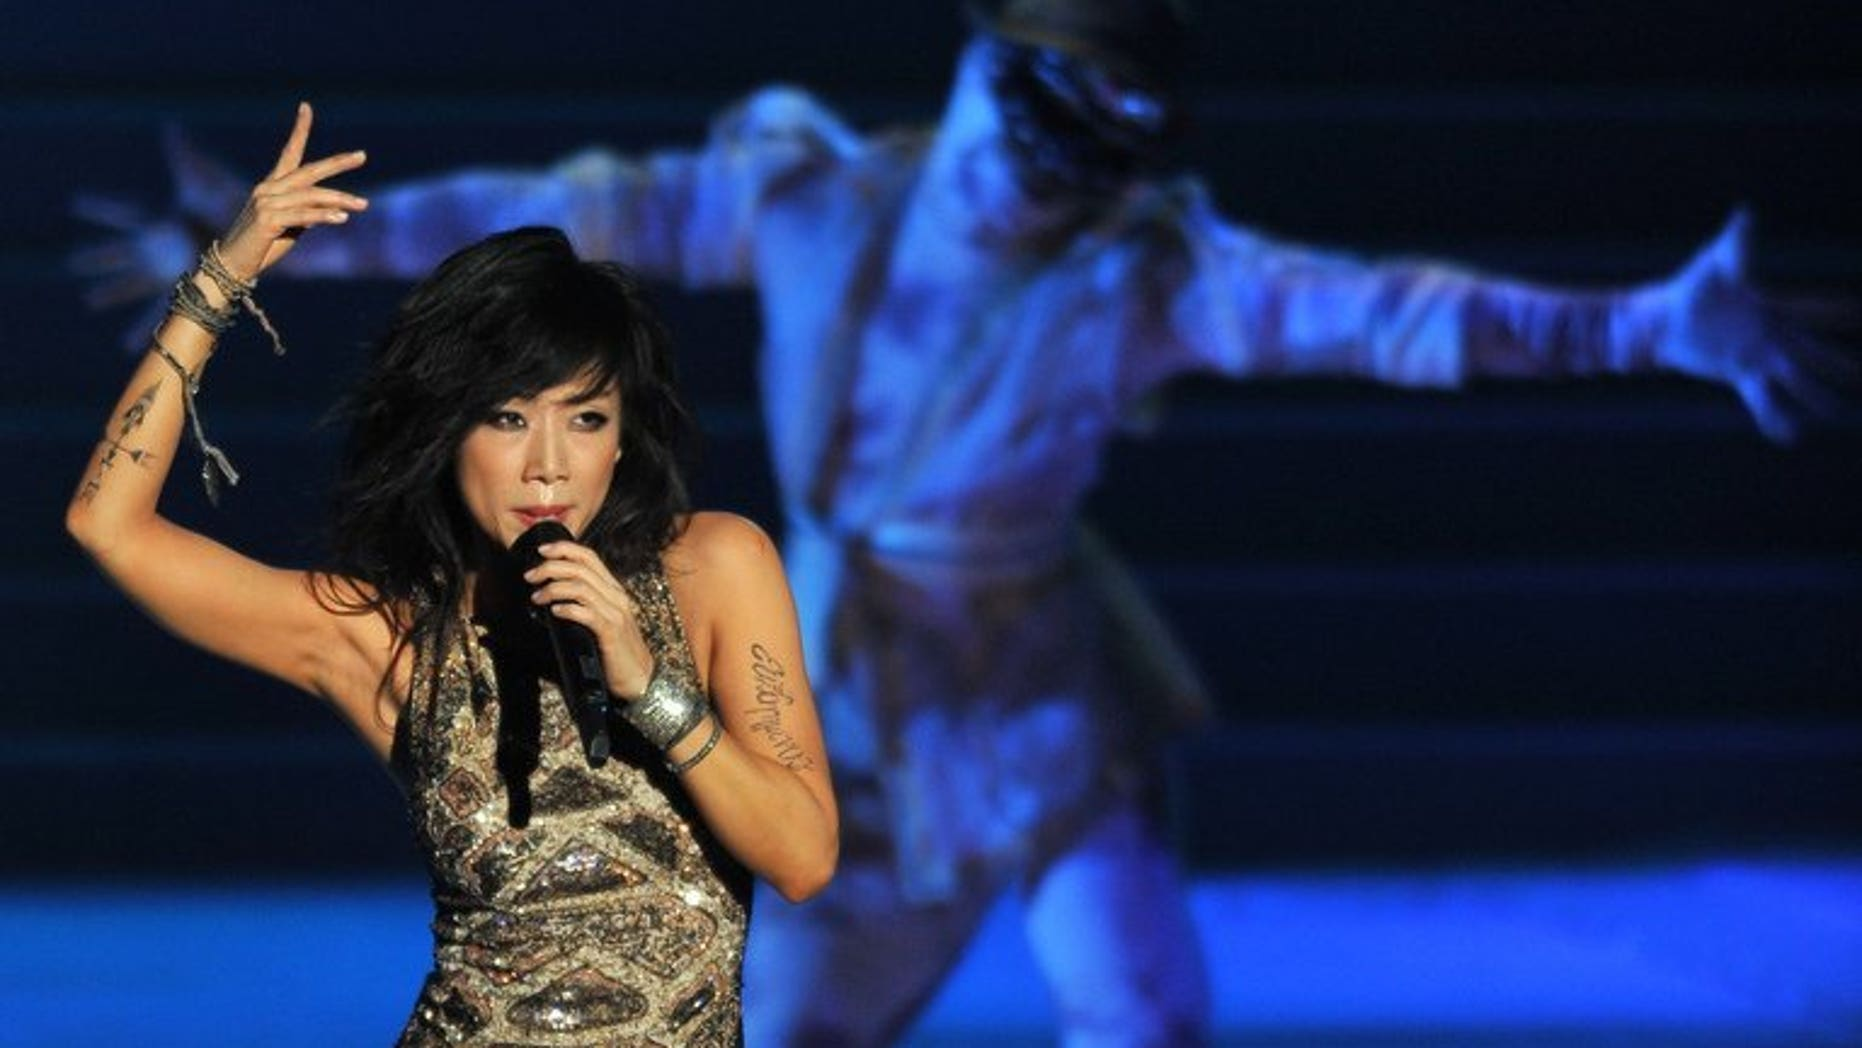 Pop musician Sandy Lam performs on stage during her concert in Kuala Lumpur on July 28, 2012. Lam won top honours at the Golden Melody Awards for Asia's best Mandarin chart music in Taipei on Saturday.